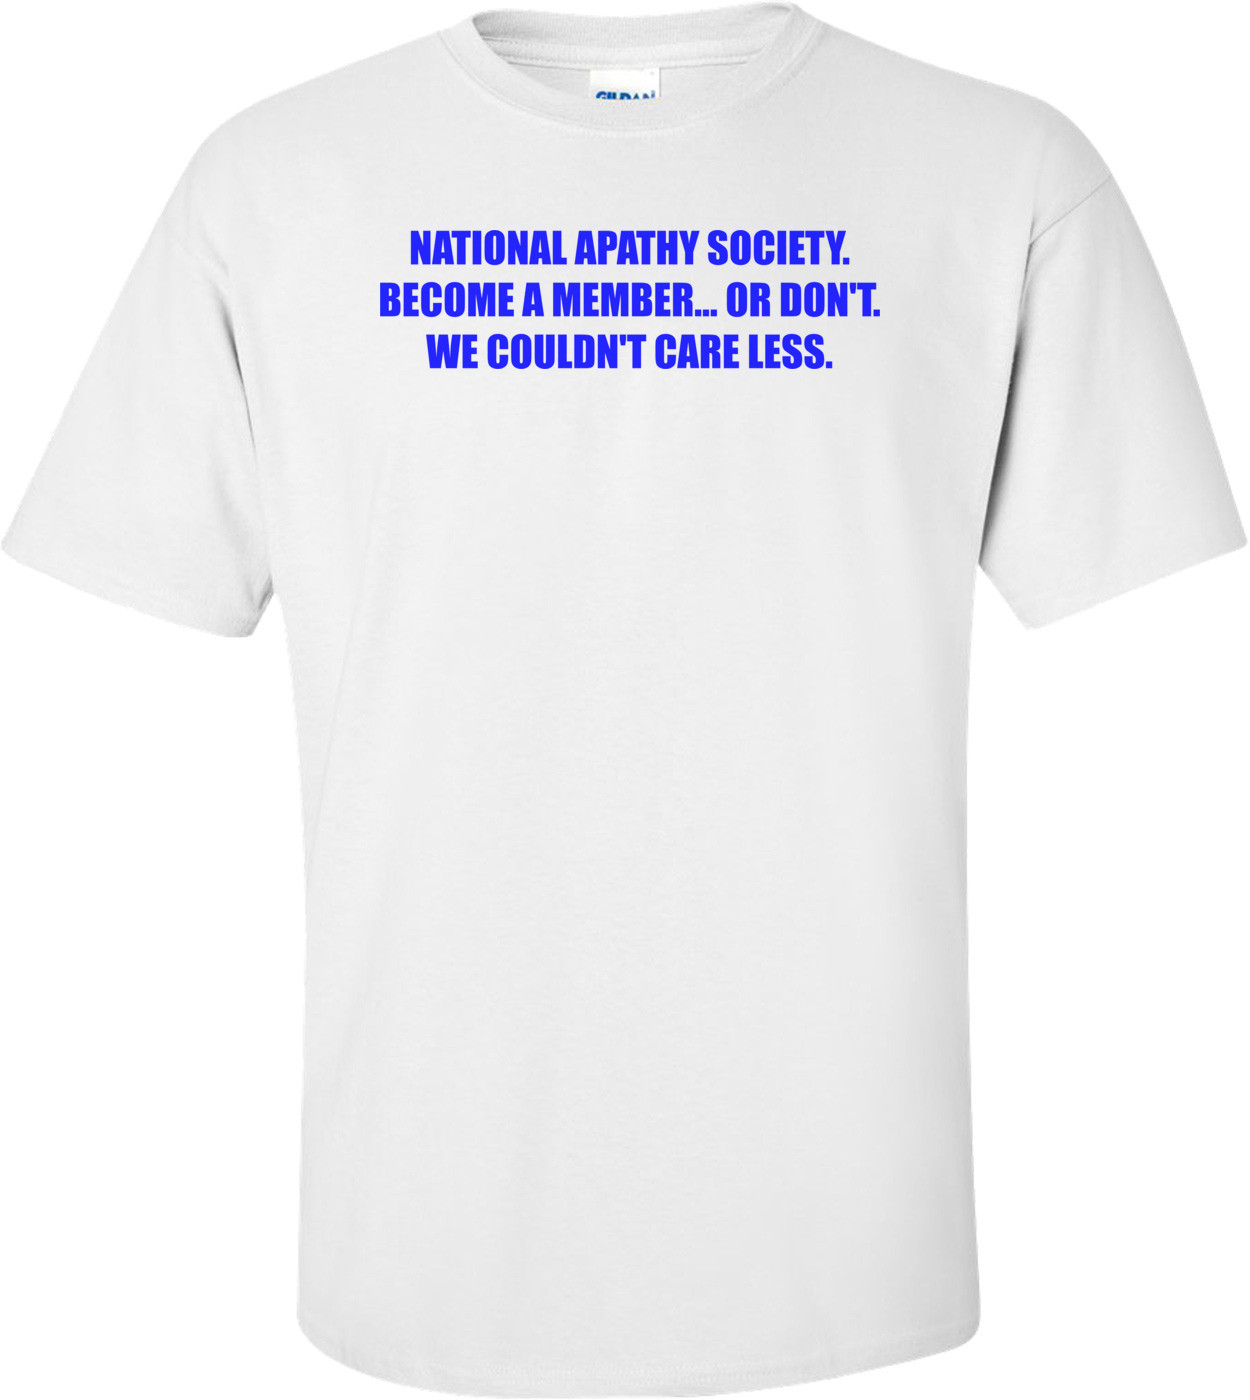 NATIONAL APATHY SOCIETY. BECOME A MEMBER... OR DON'T. WE COULDN'T CARE LESS. Shirt